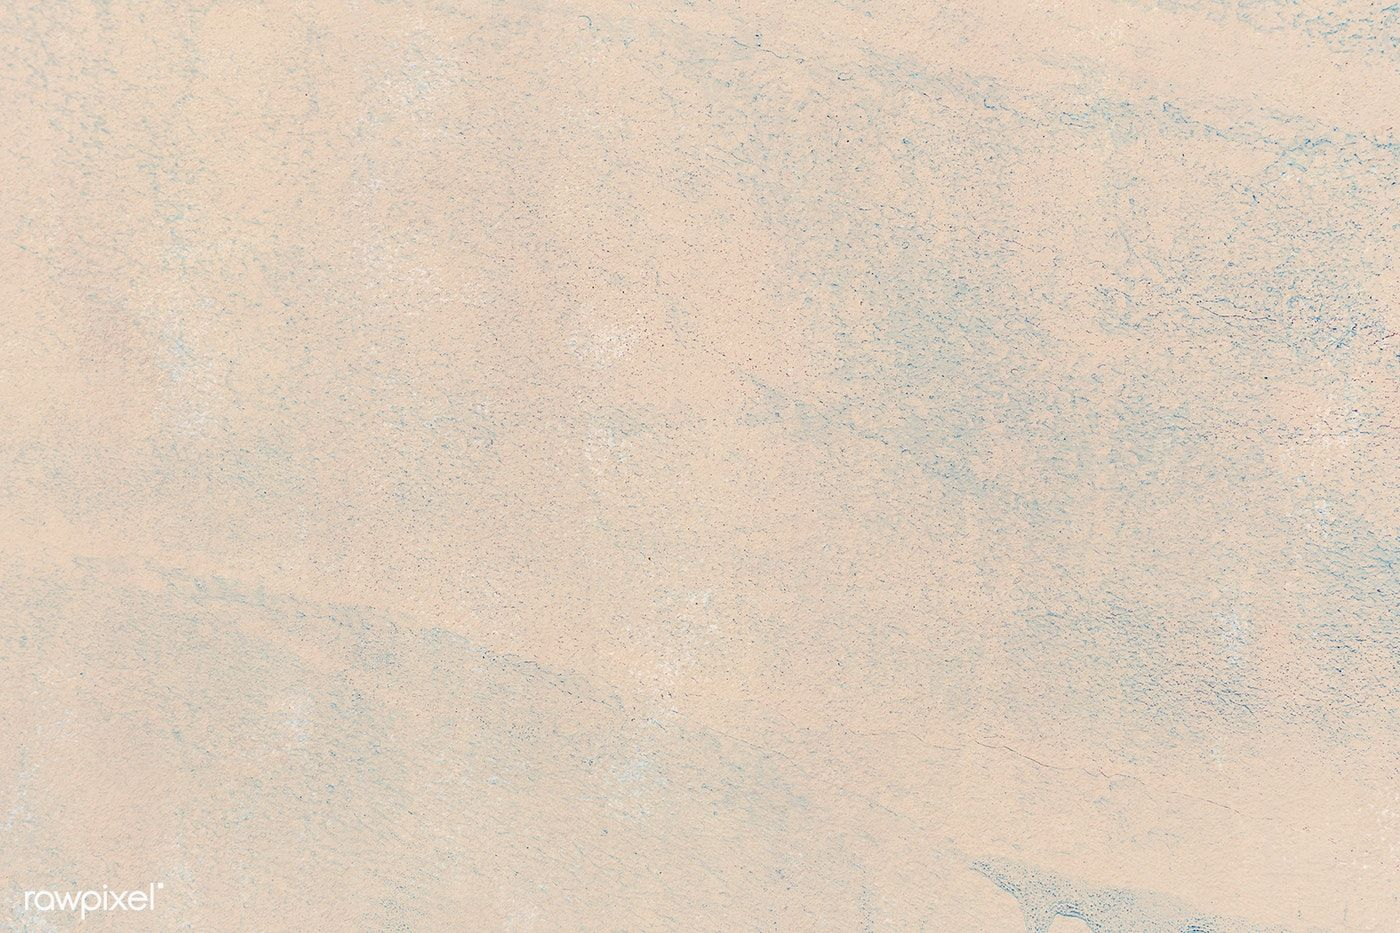 Cream Smooth Textured Wall Background Free Image By Rawpixel Com